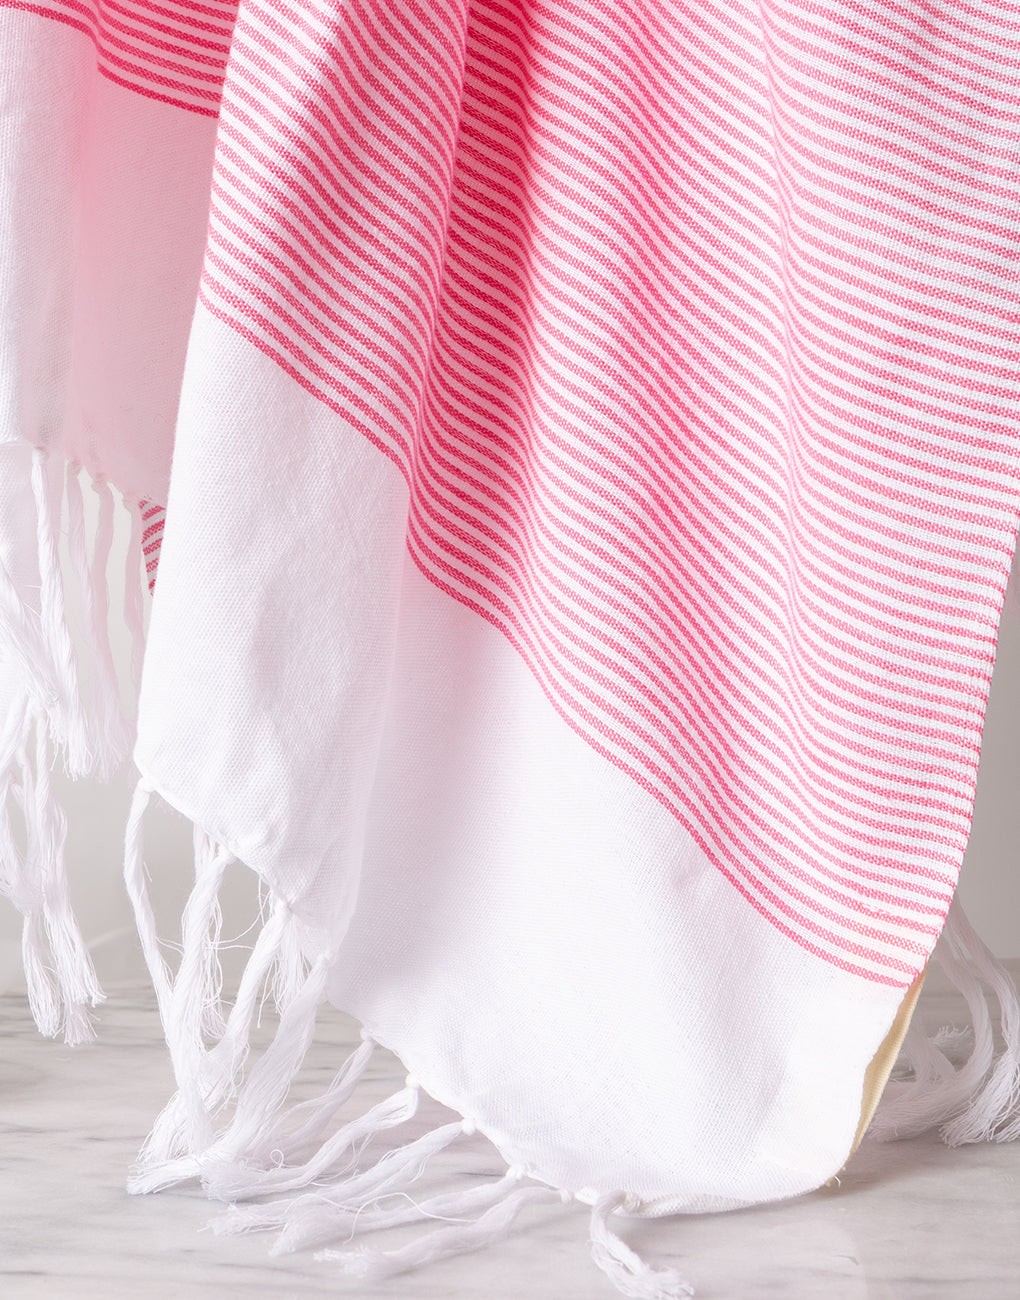 Lightweight Fringe Towel In Style No. 1 In Pink Close Up | The Little Market